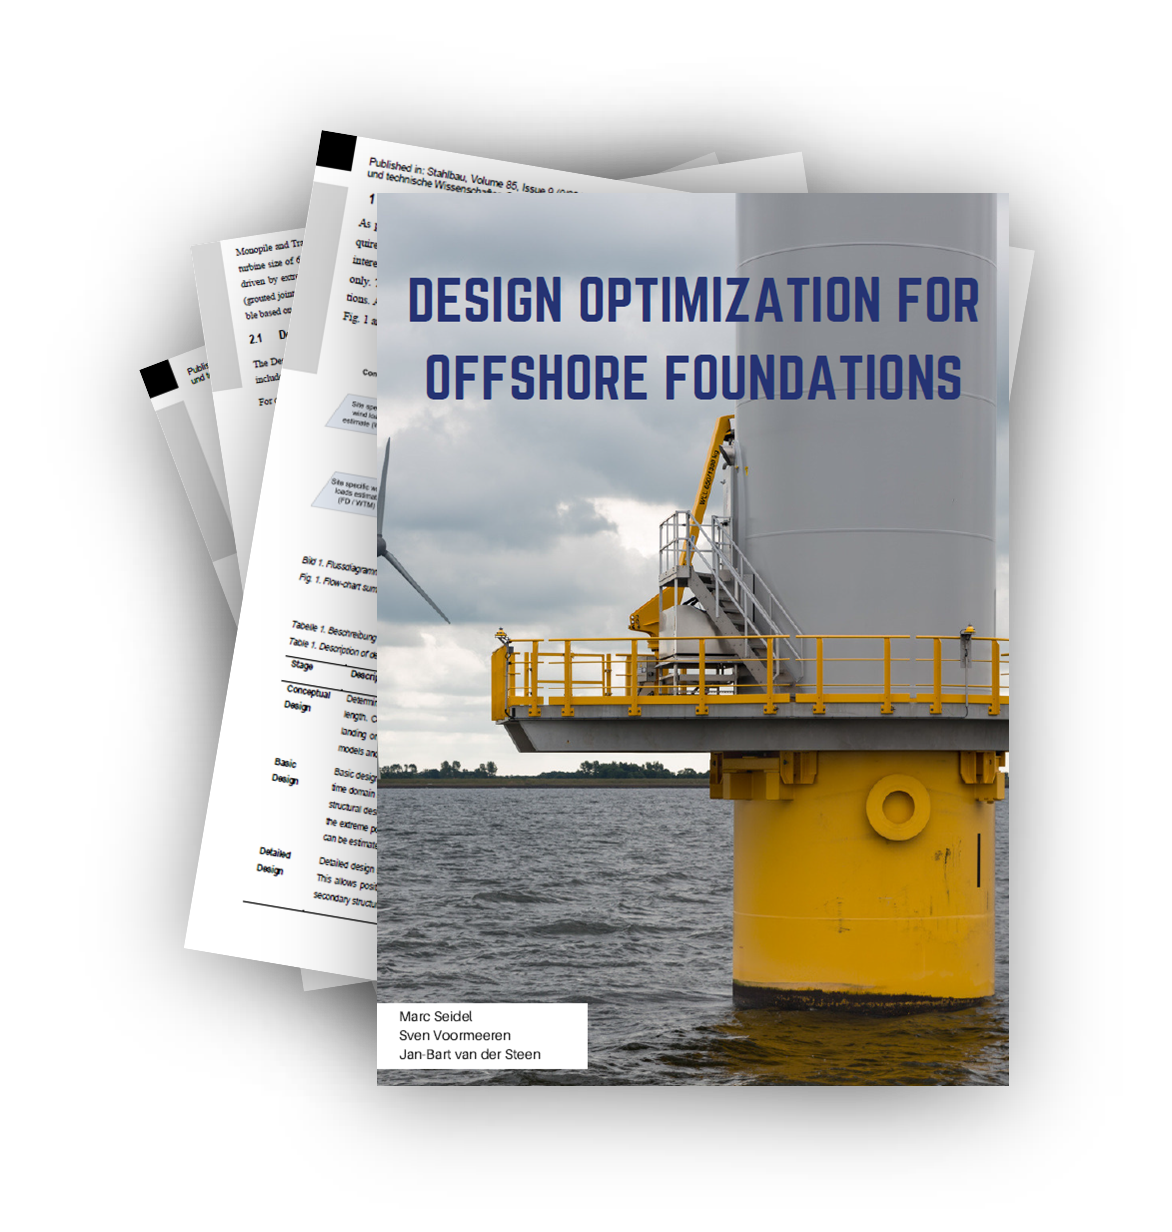 Design Optimization for Offshore Foundations